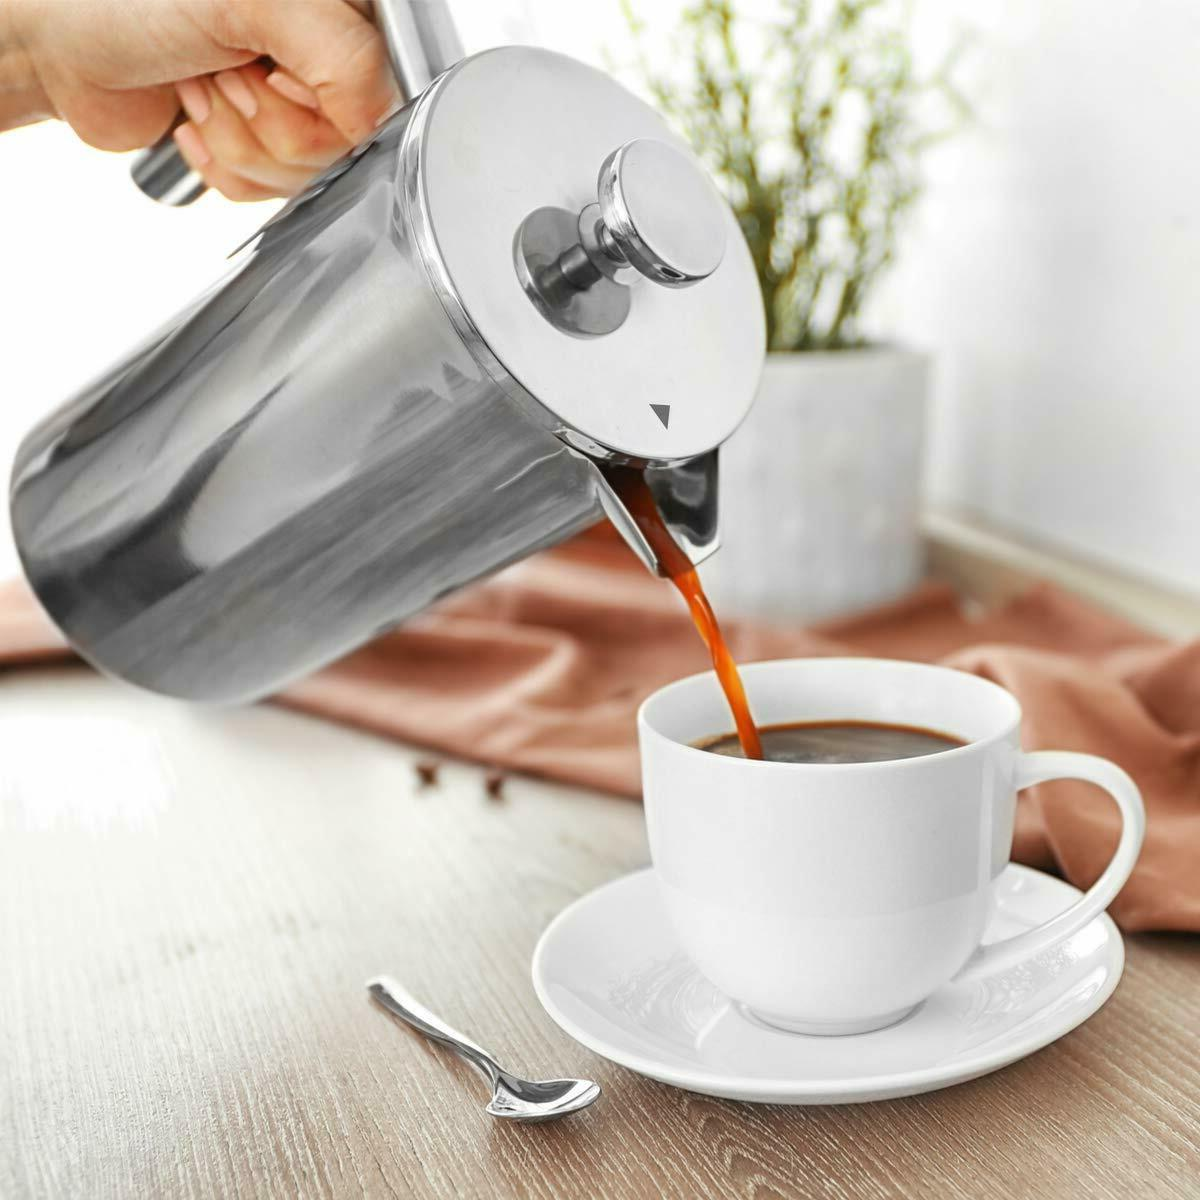 ENLOY Press Coffee Maker Stainless Coffee